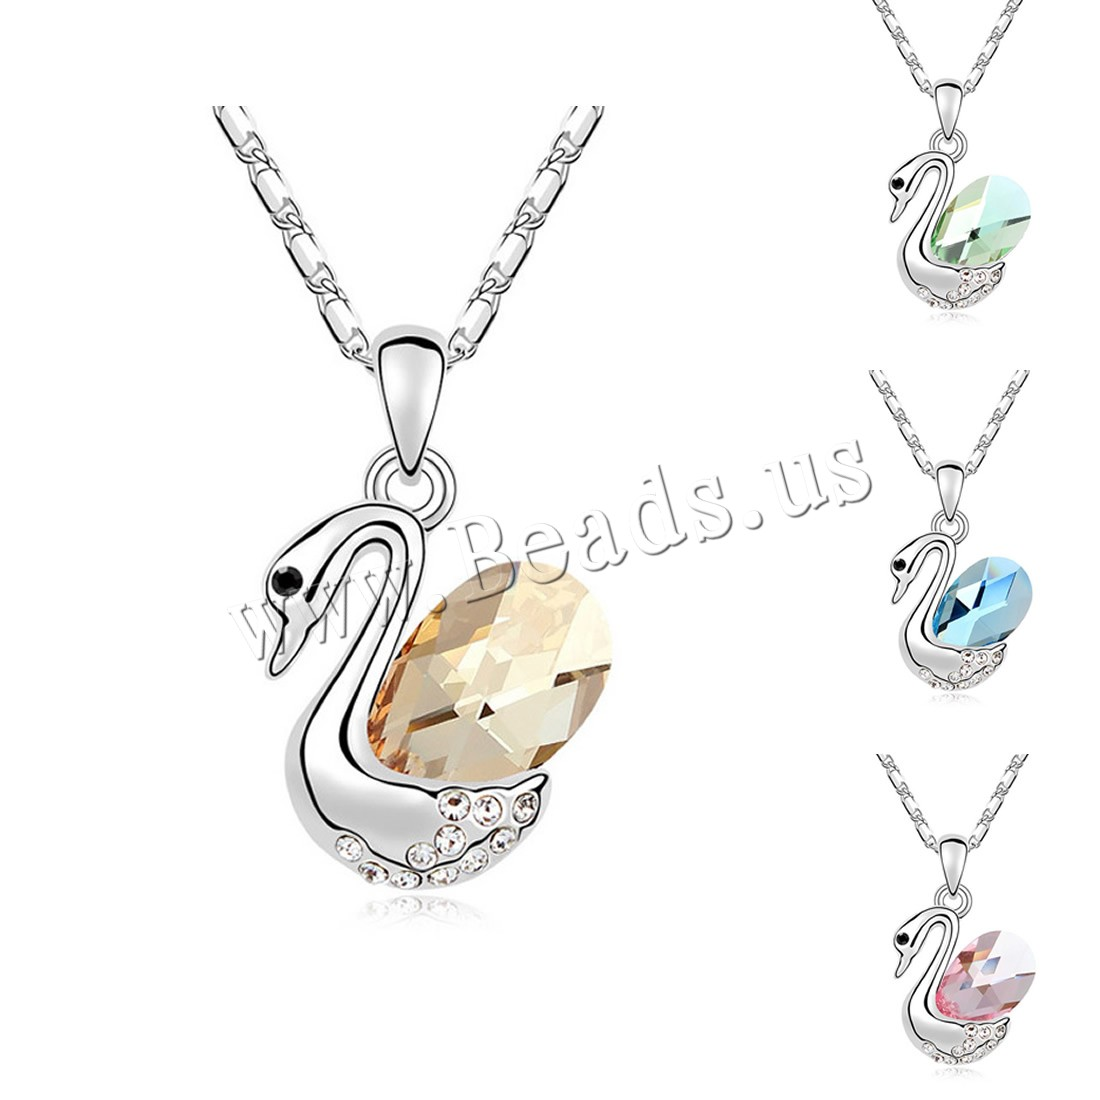 Buy CRYSTALLIZED™ Element Crystal Necklace Brass CRYSTALLIZED™ 5cm extender chain Swan platinum plated bar chain & woman & faceted colors choice nickel lead & cadmium free 18x28mm Sold Per Approx 15.5 Inch Strand